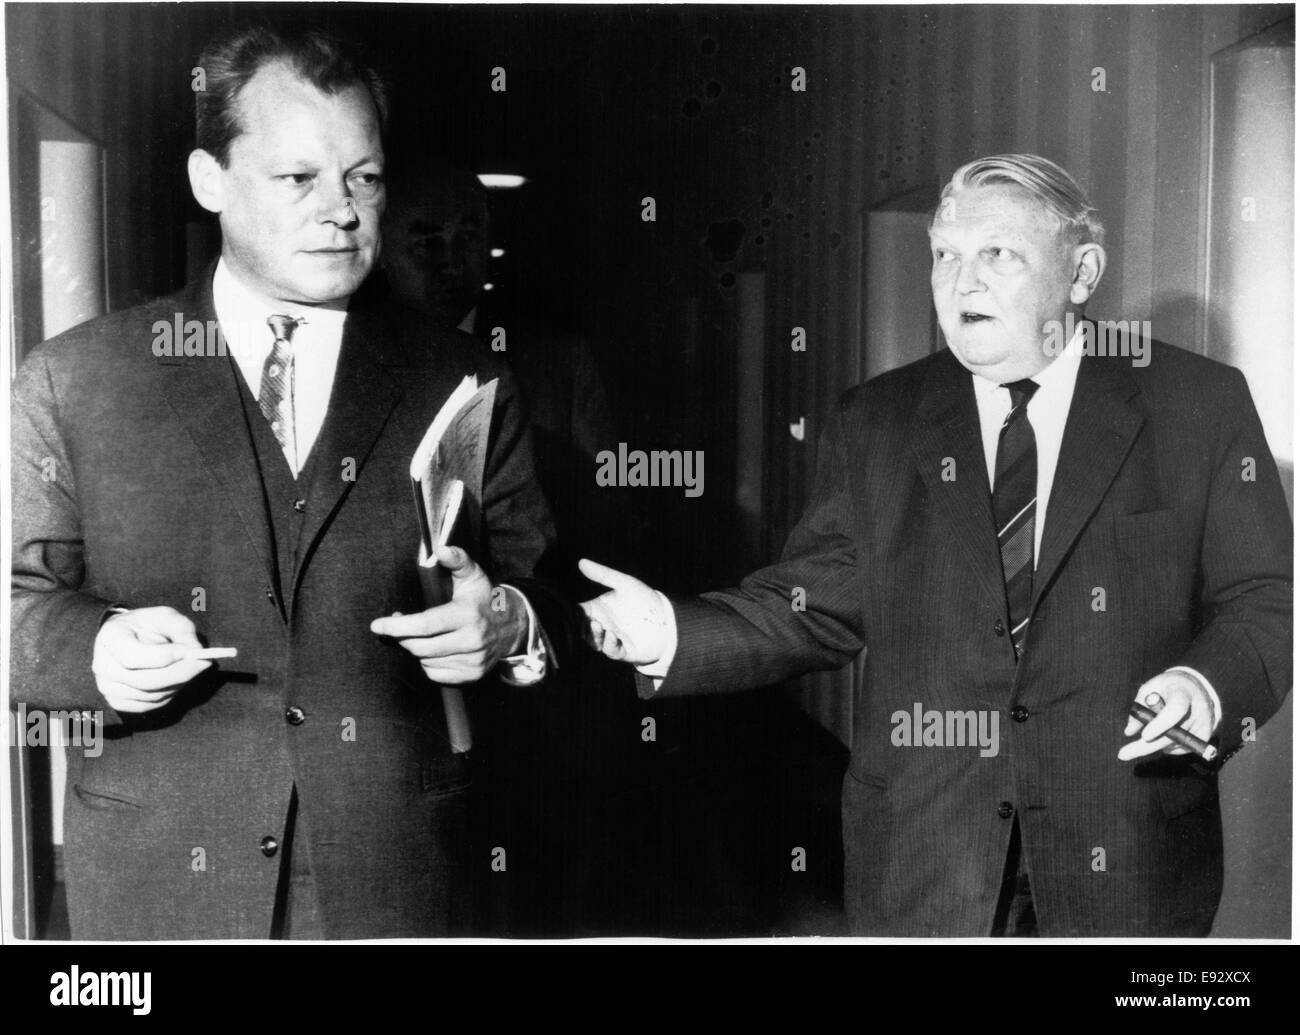 Mayor Willie Brandt of West Berlin and Ludwig Erhard, Economics Minister, in Discussion, Bonn, West Germany, 1961 - Stock Image